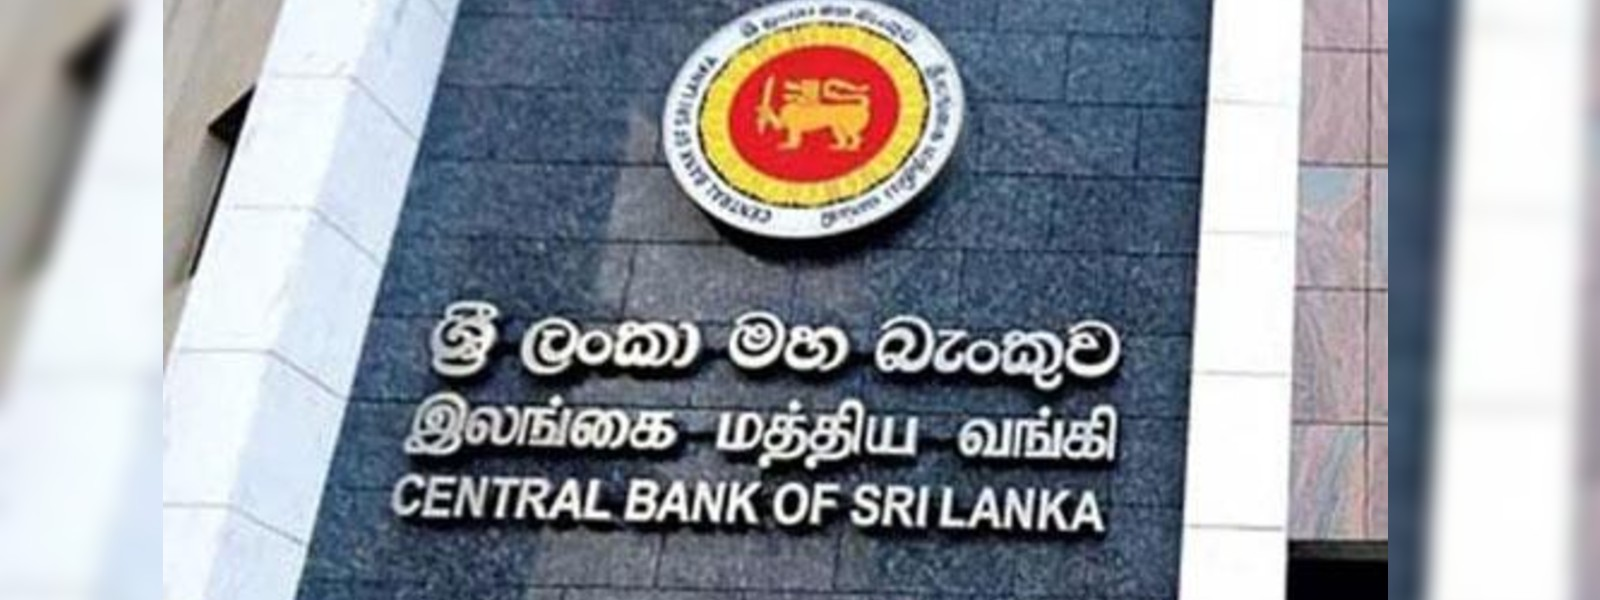 CBSL says it will maintain financial stability ; Fmr. State Minister of Finance requests to restore trust in the system